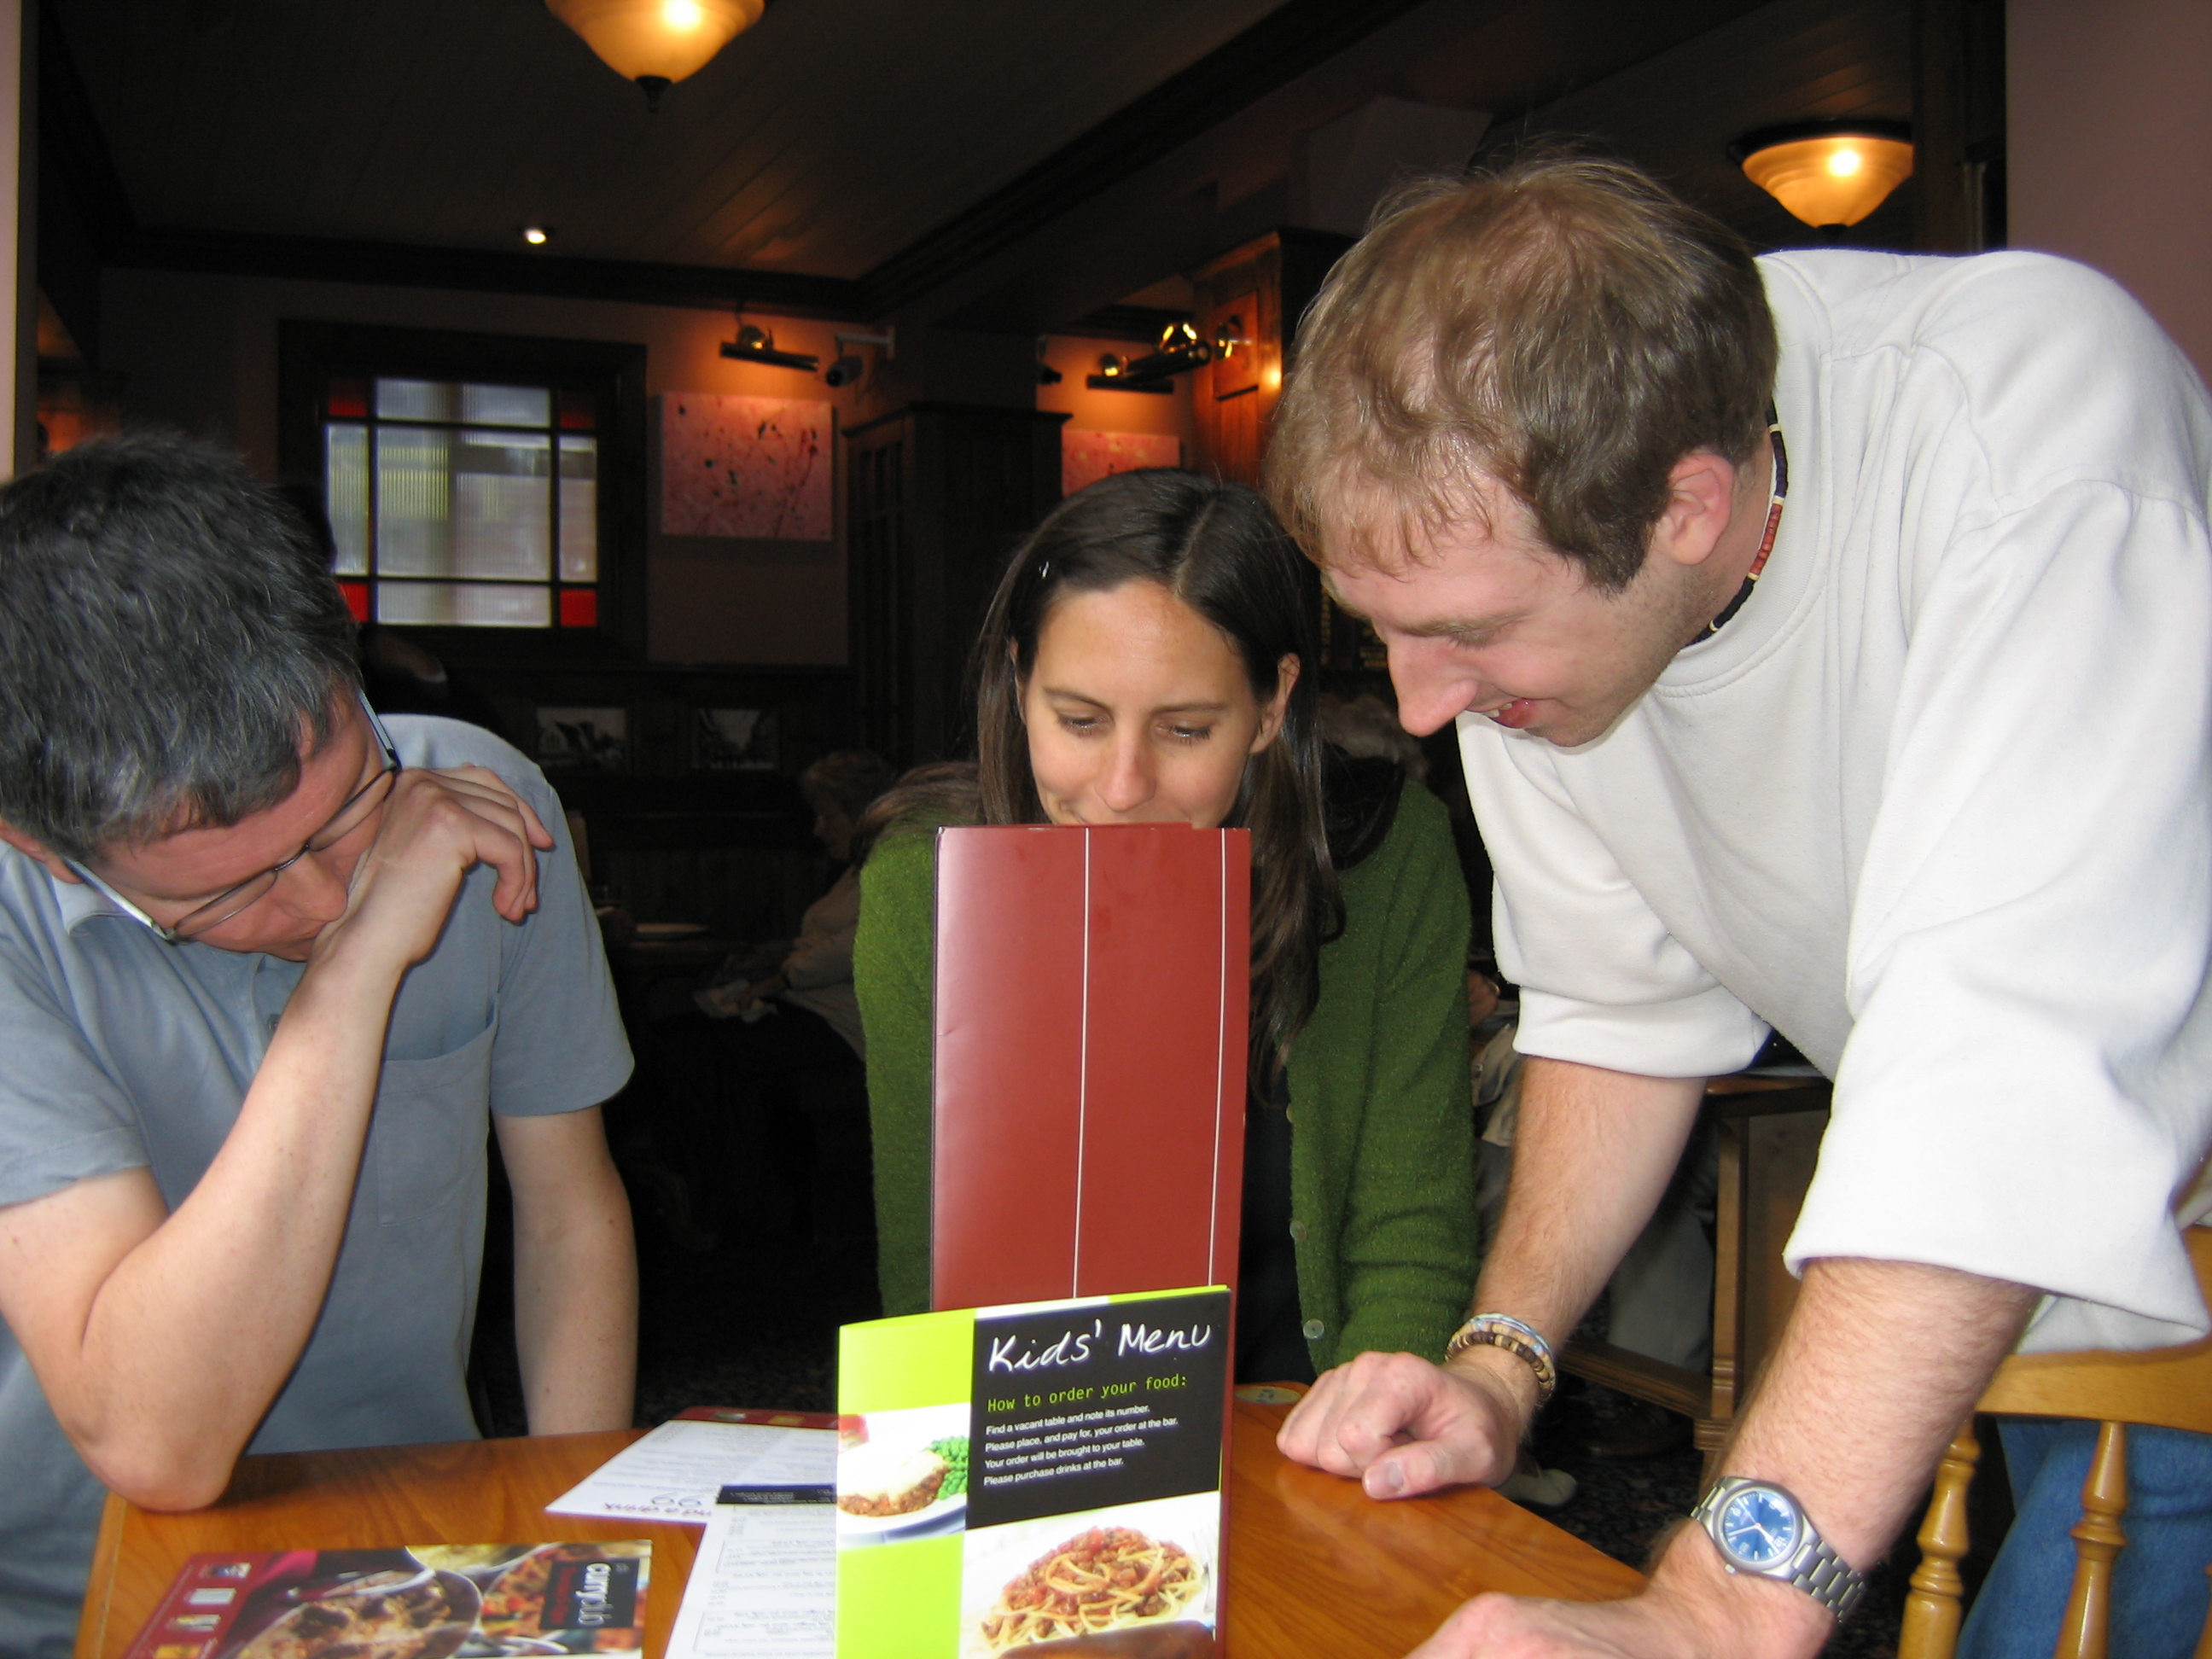 Bonnie hides behind the menu to avoid Jose's ranting about clearing